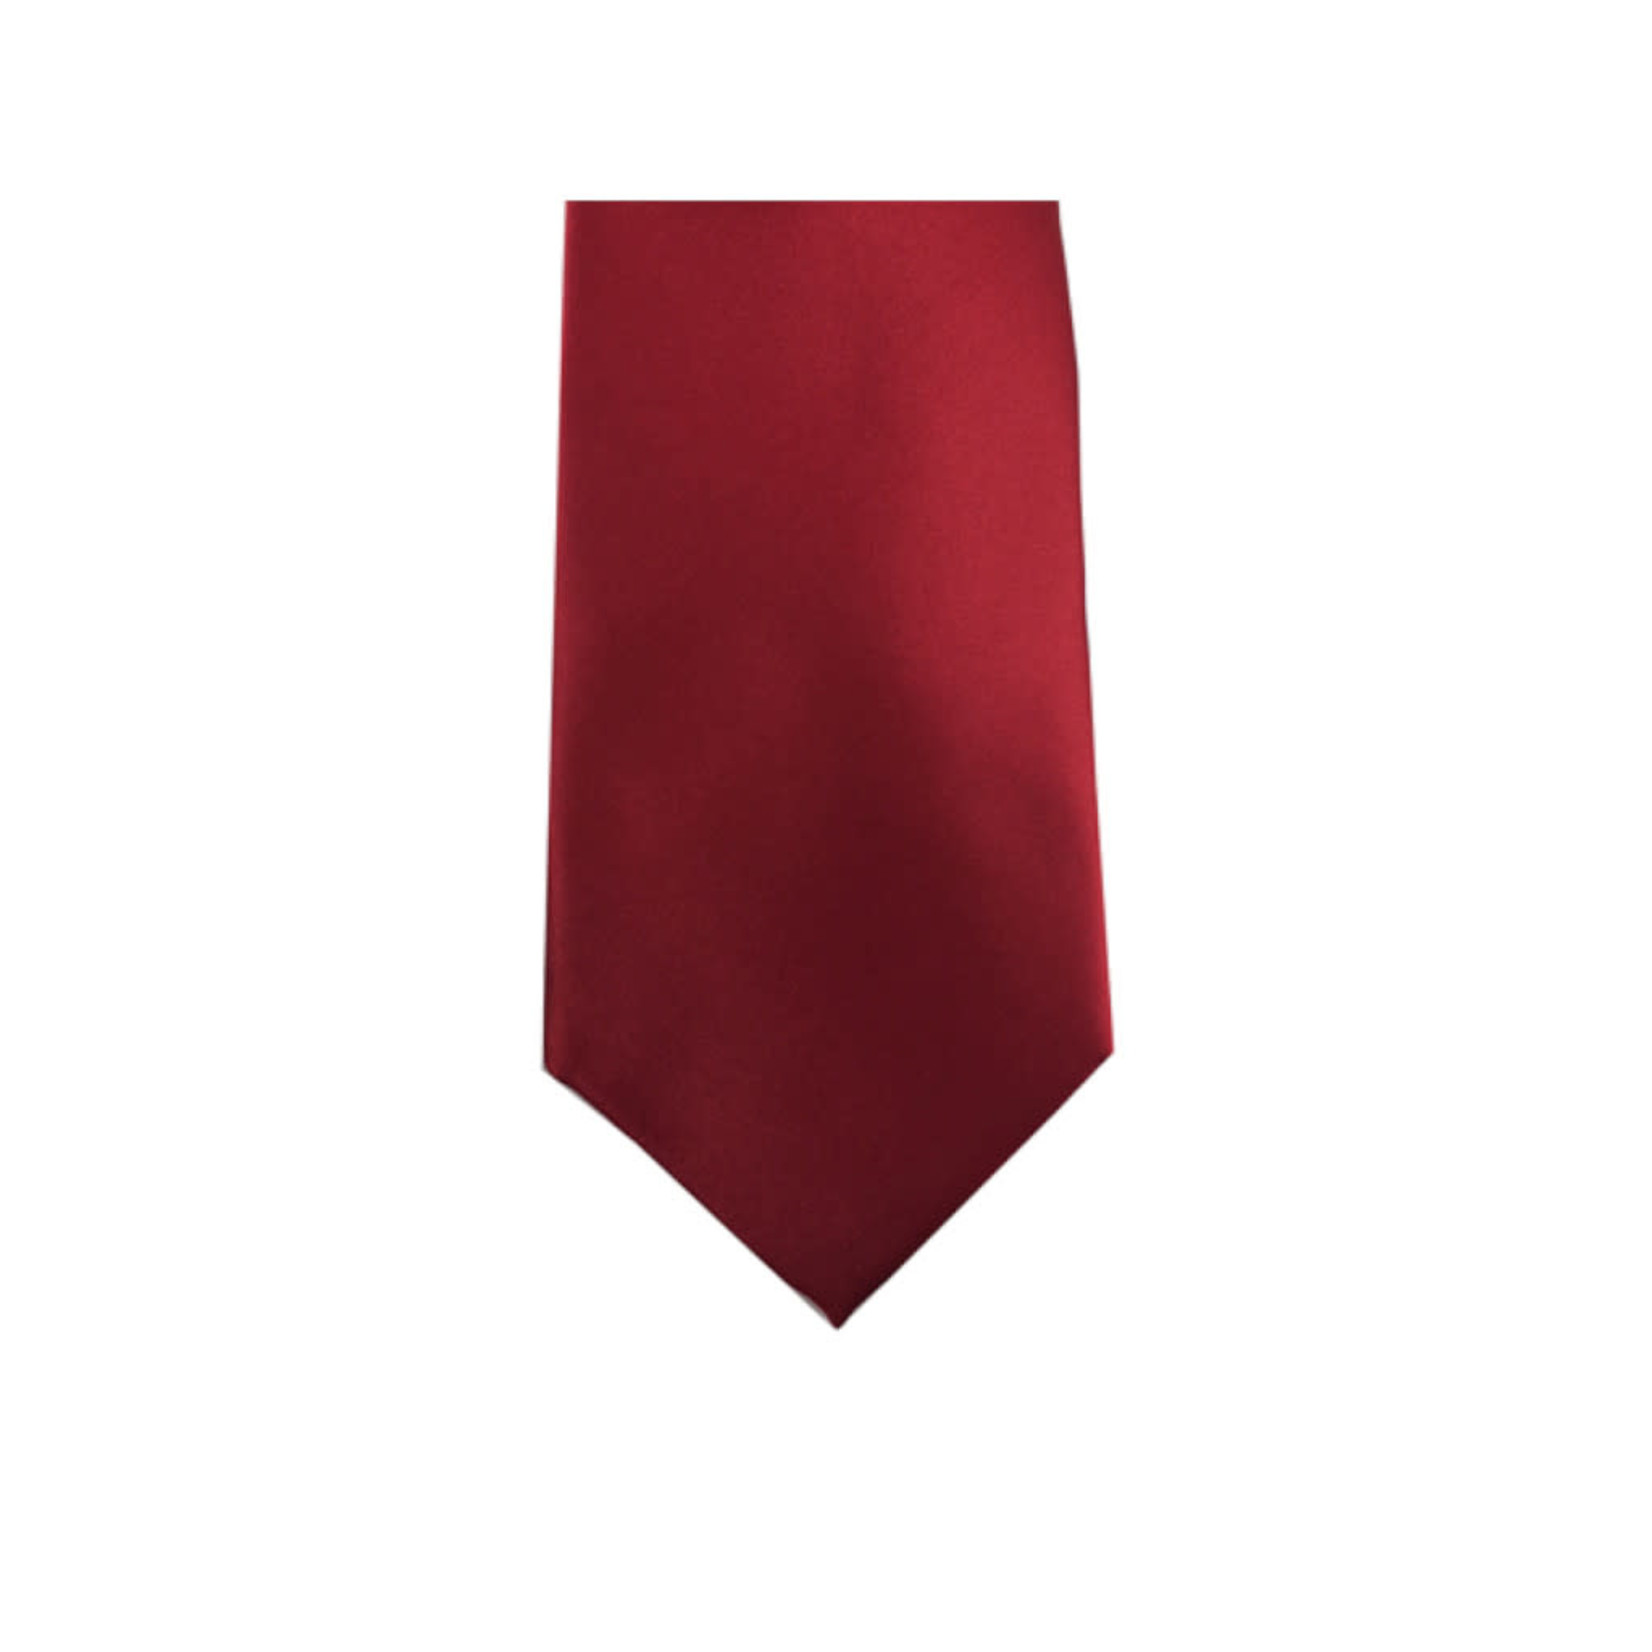 Knotz M100-31 Solid Red Tie